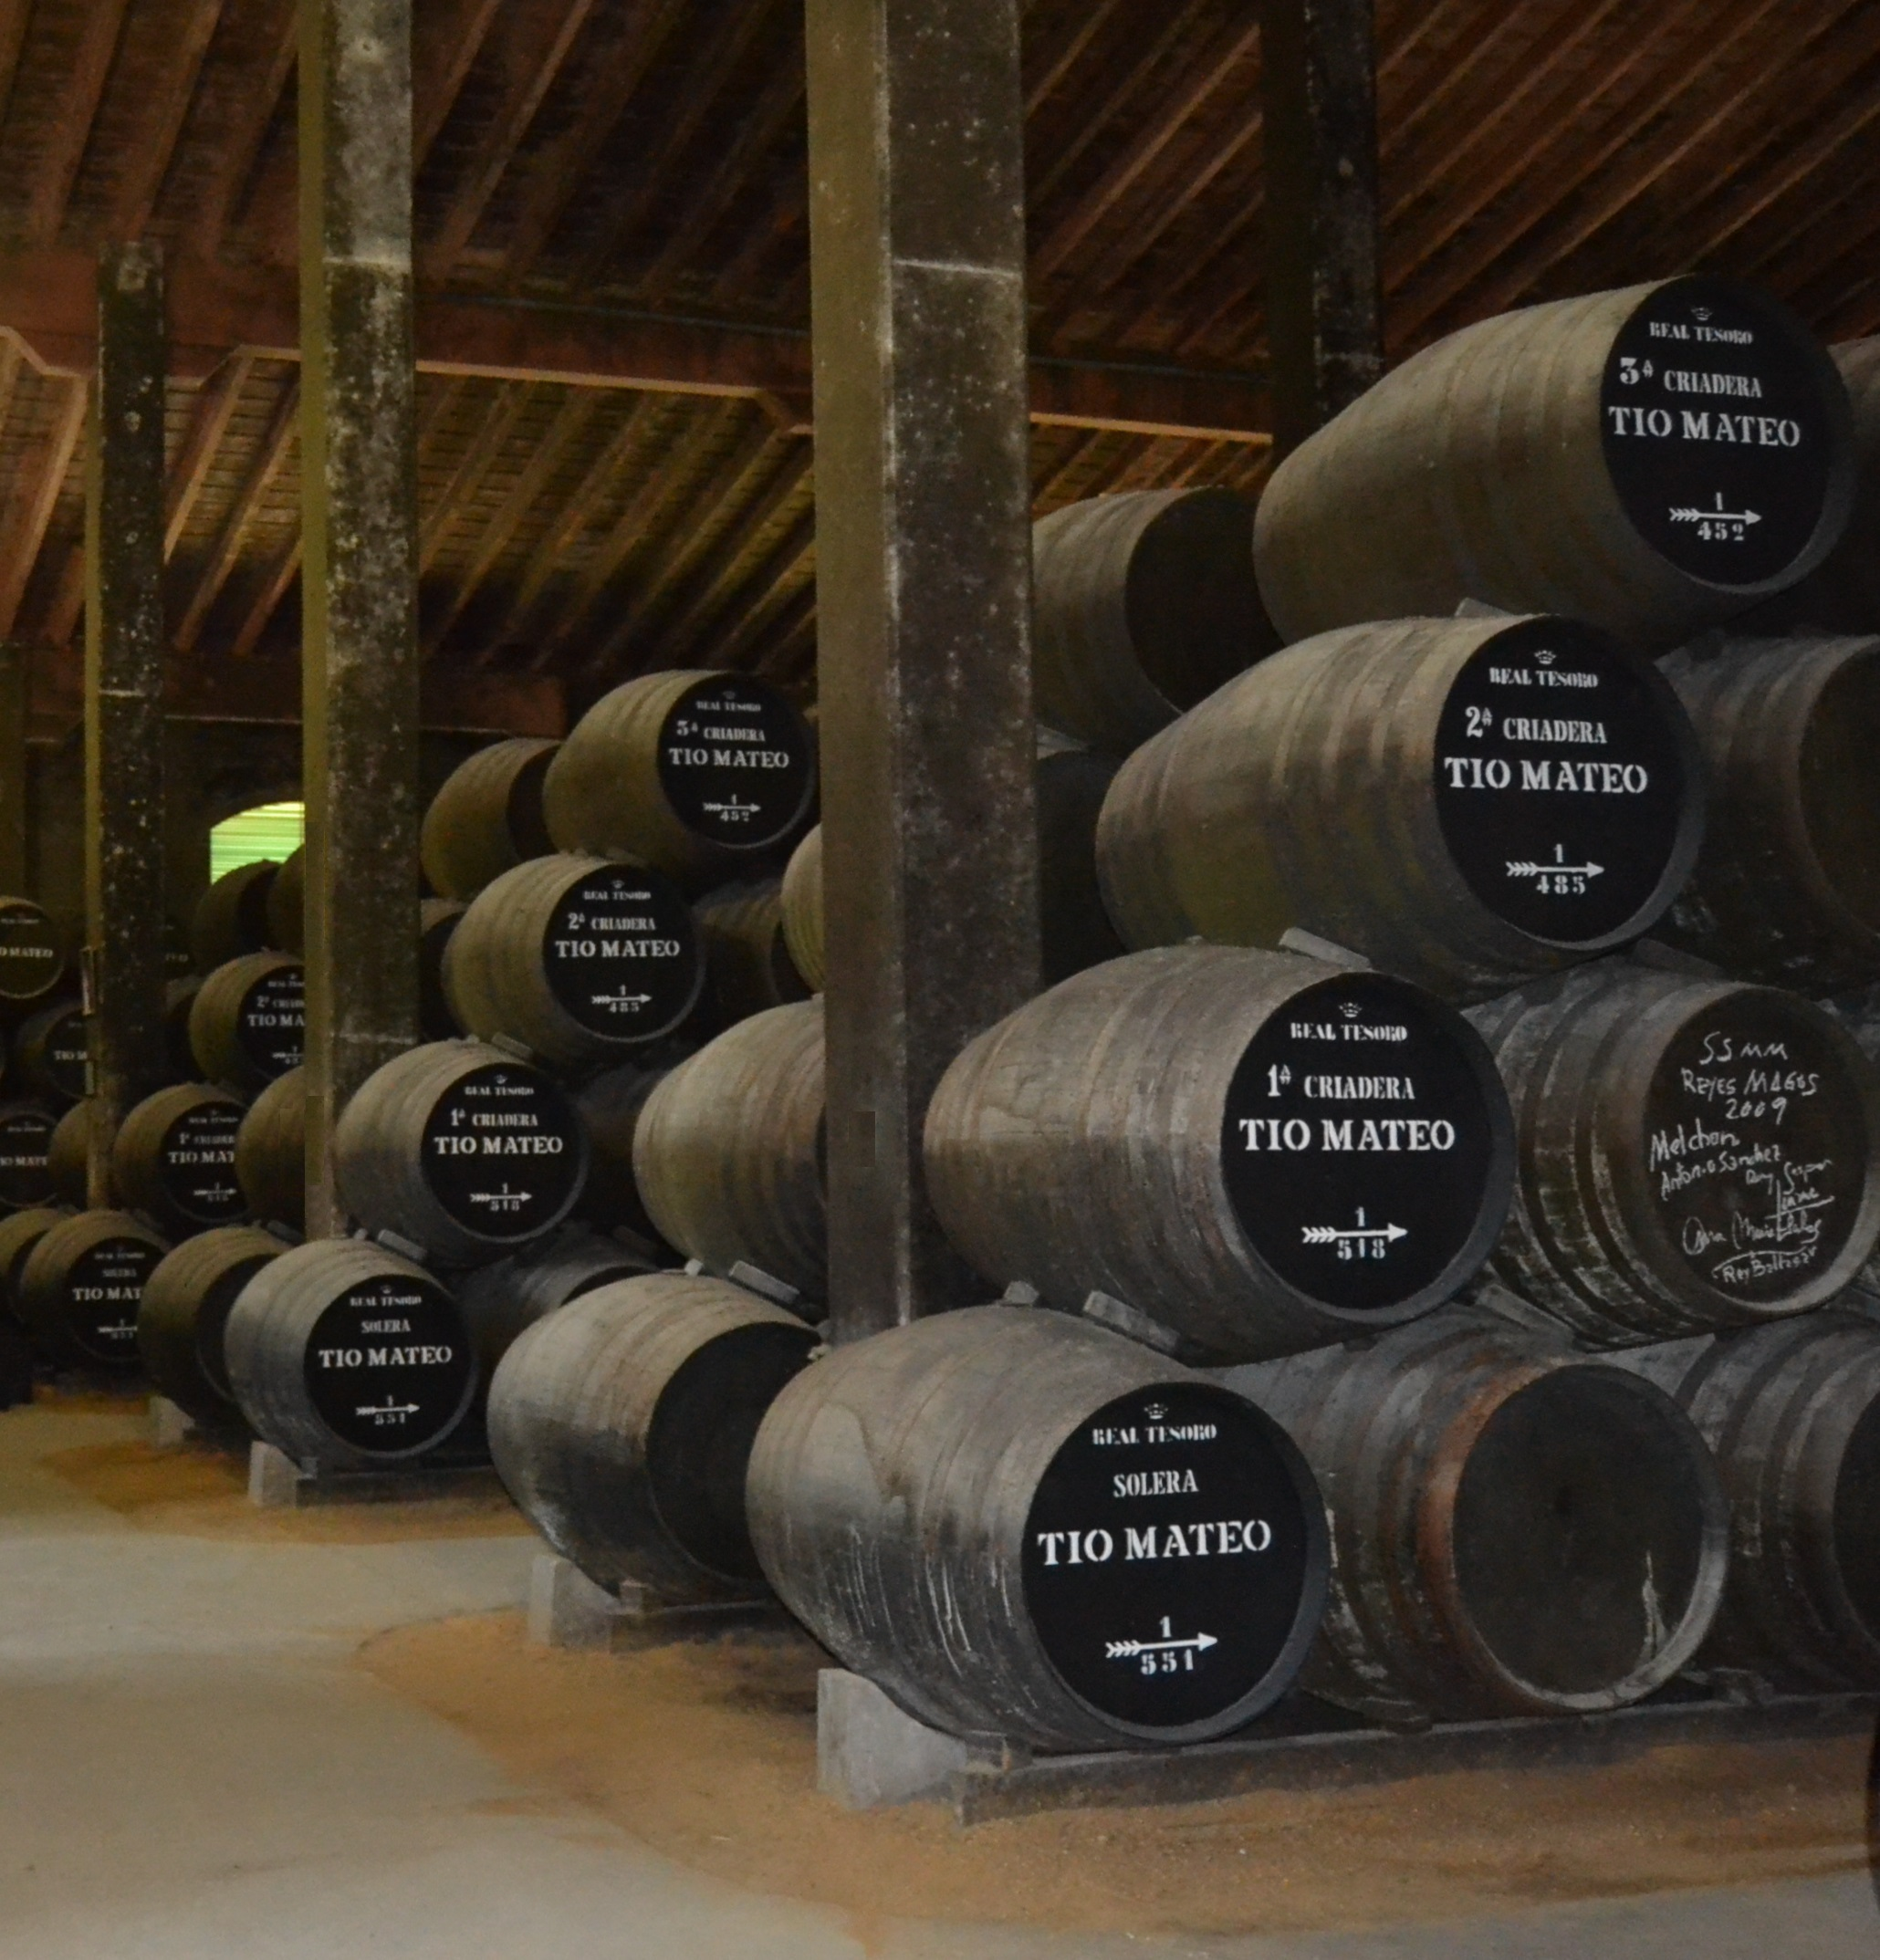 A traditional solera set up, with the youngest sherry at the top and the solera cask at the bottom with the most mature sherry